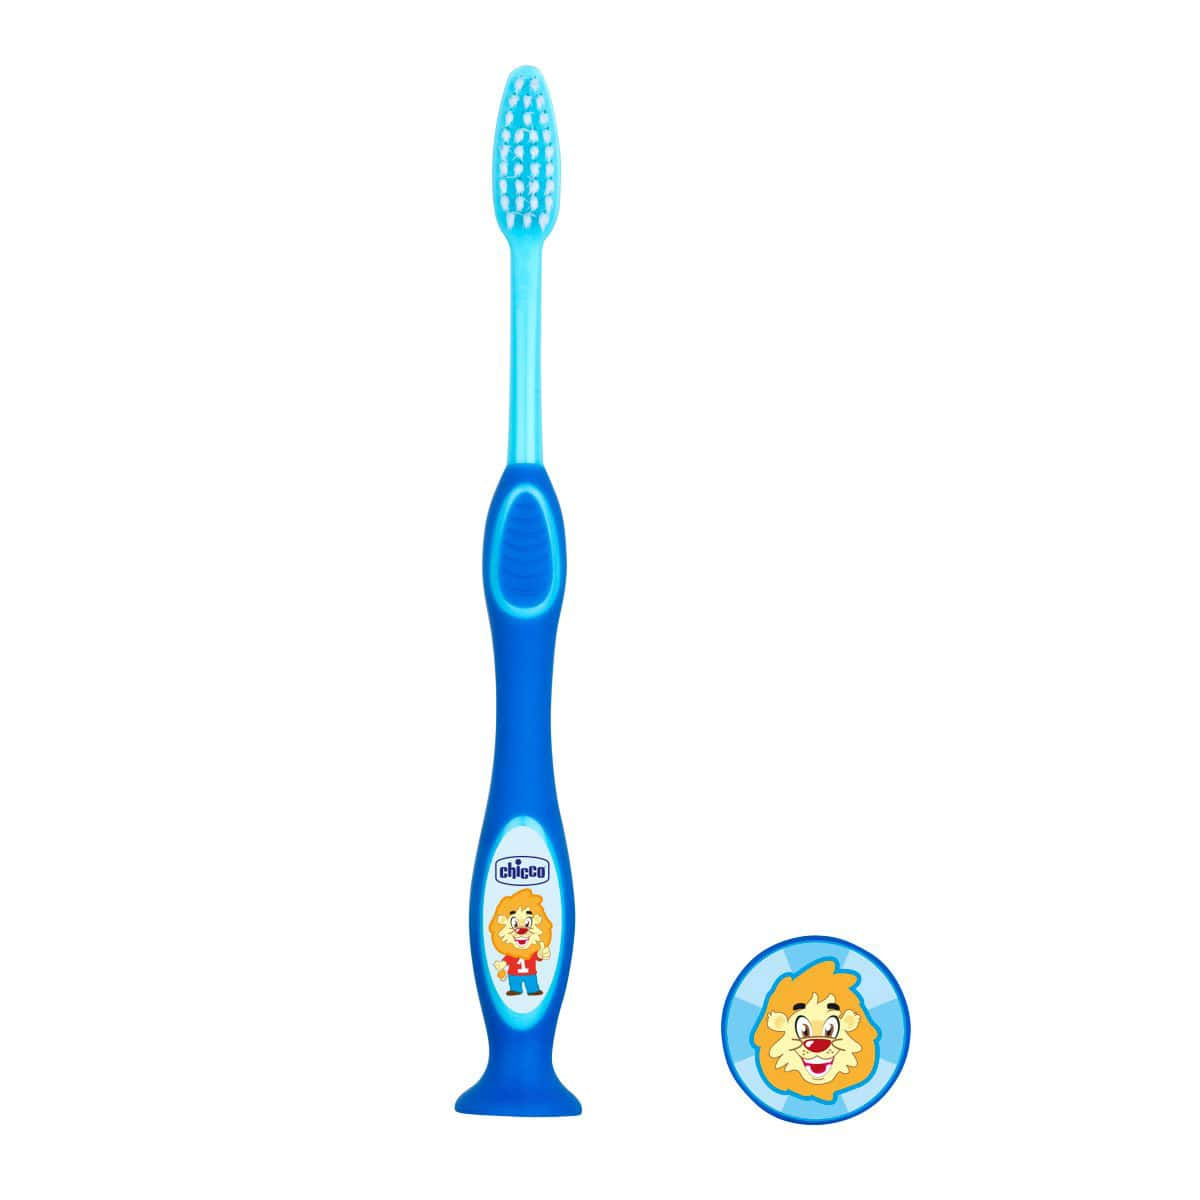 Chicco Toothbrush 3y-6y Blue